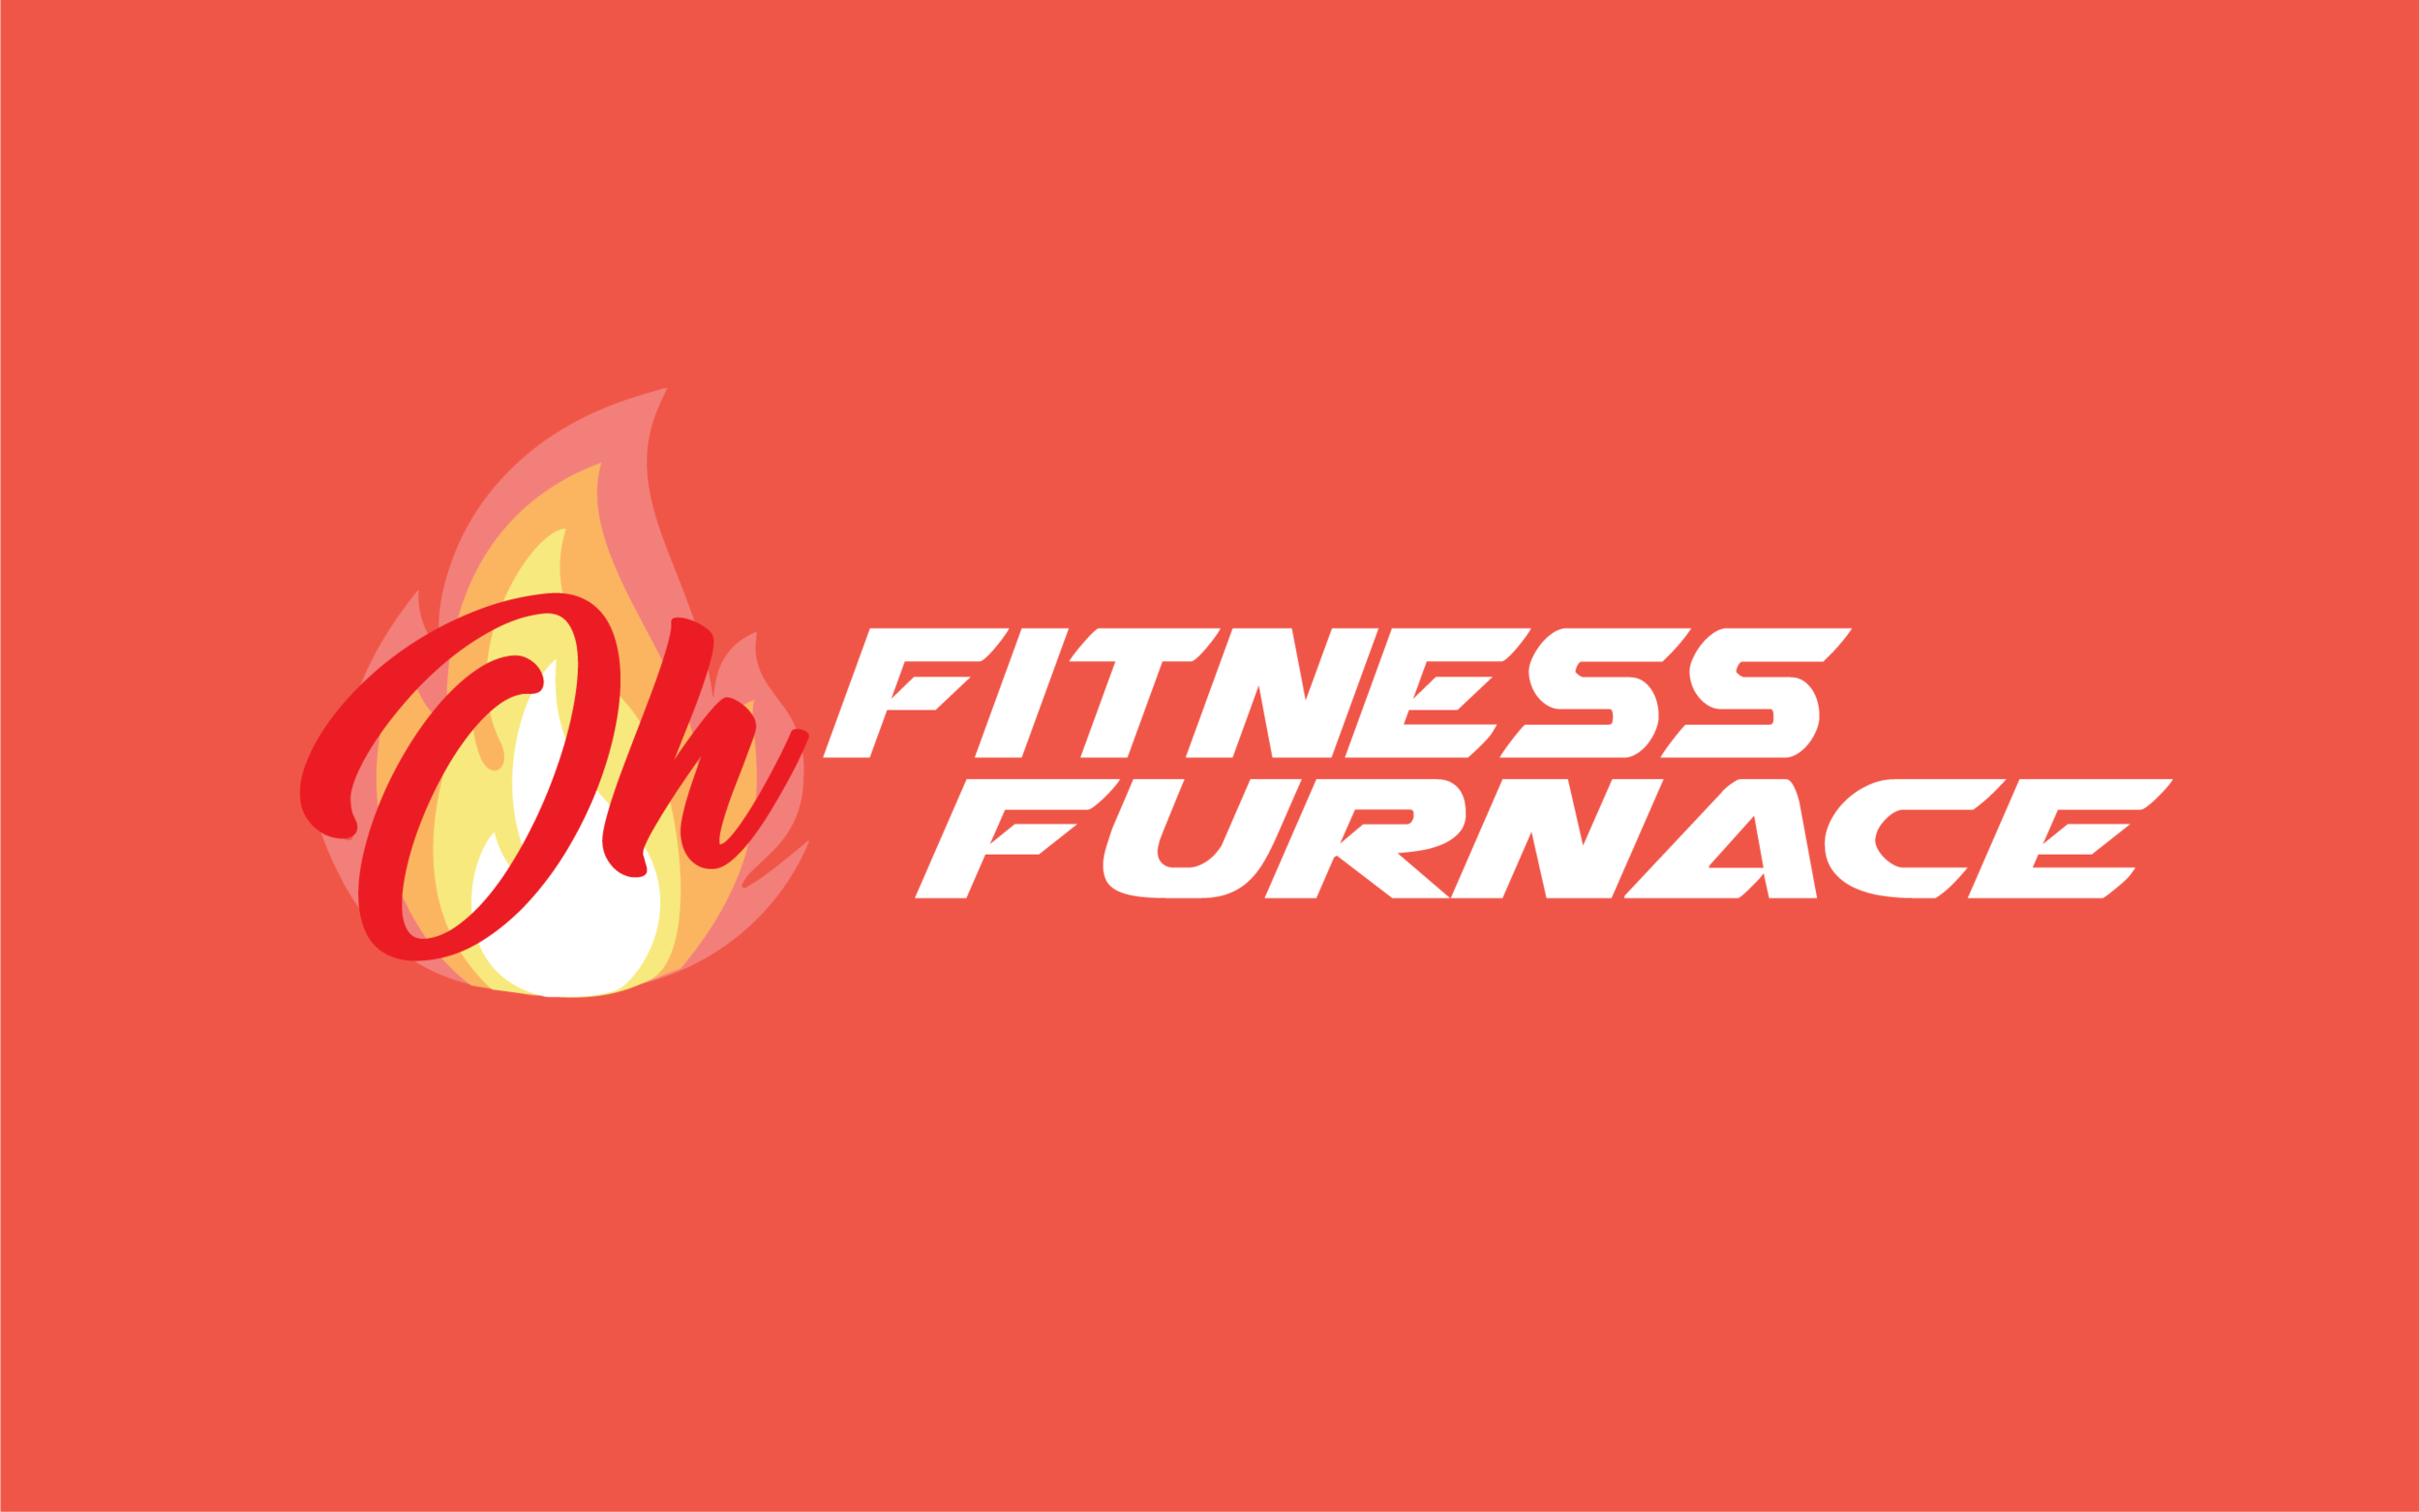 ohfitness_furnace.png